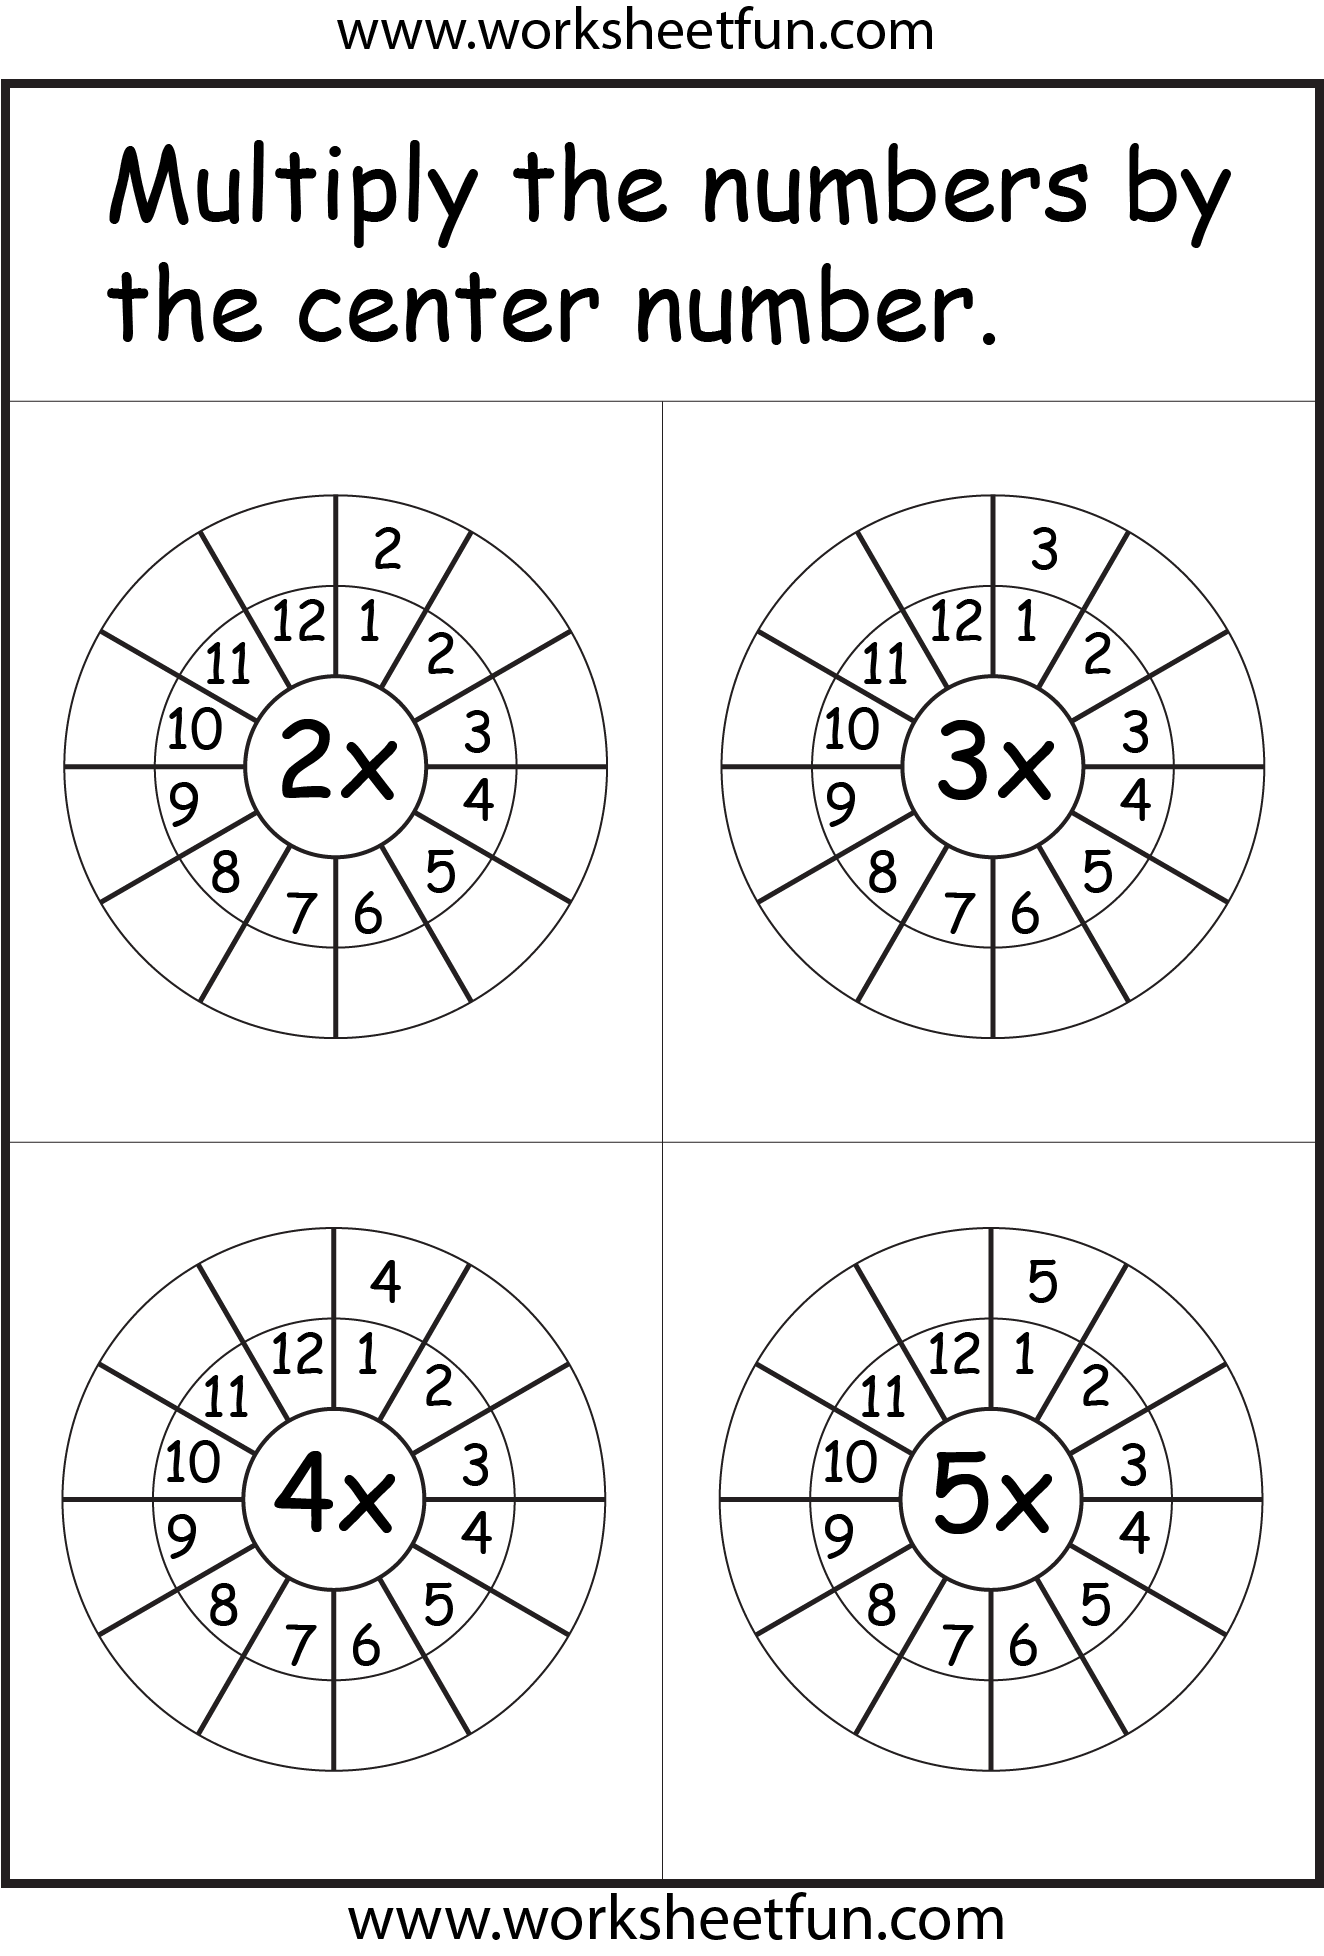 Times Table Worksheets 1 2 3 4 5 6 7 8 9 10 11 12 13 14 15 16 17 18 19 And